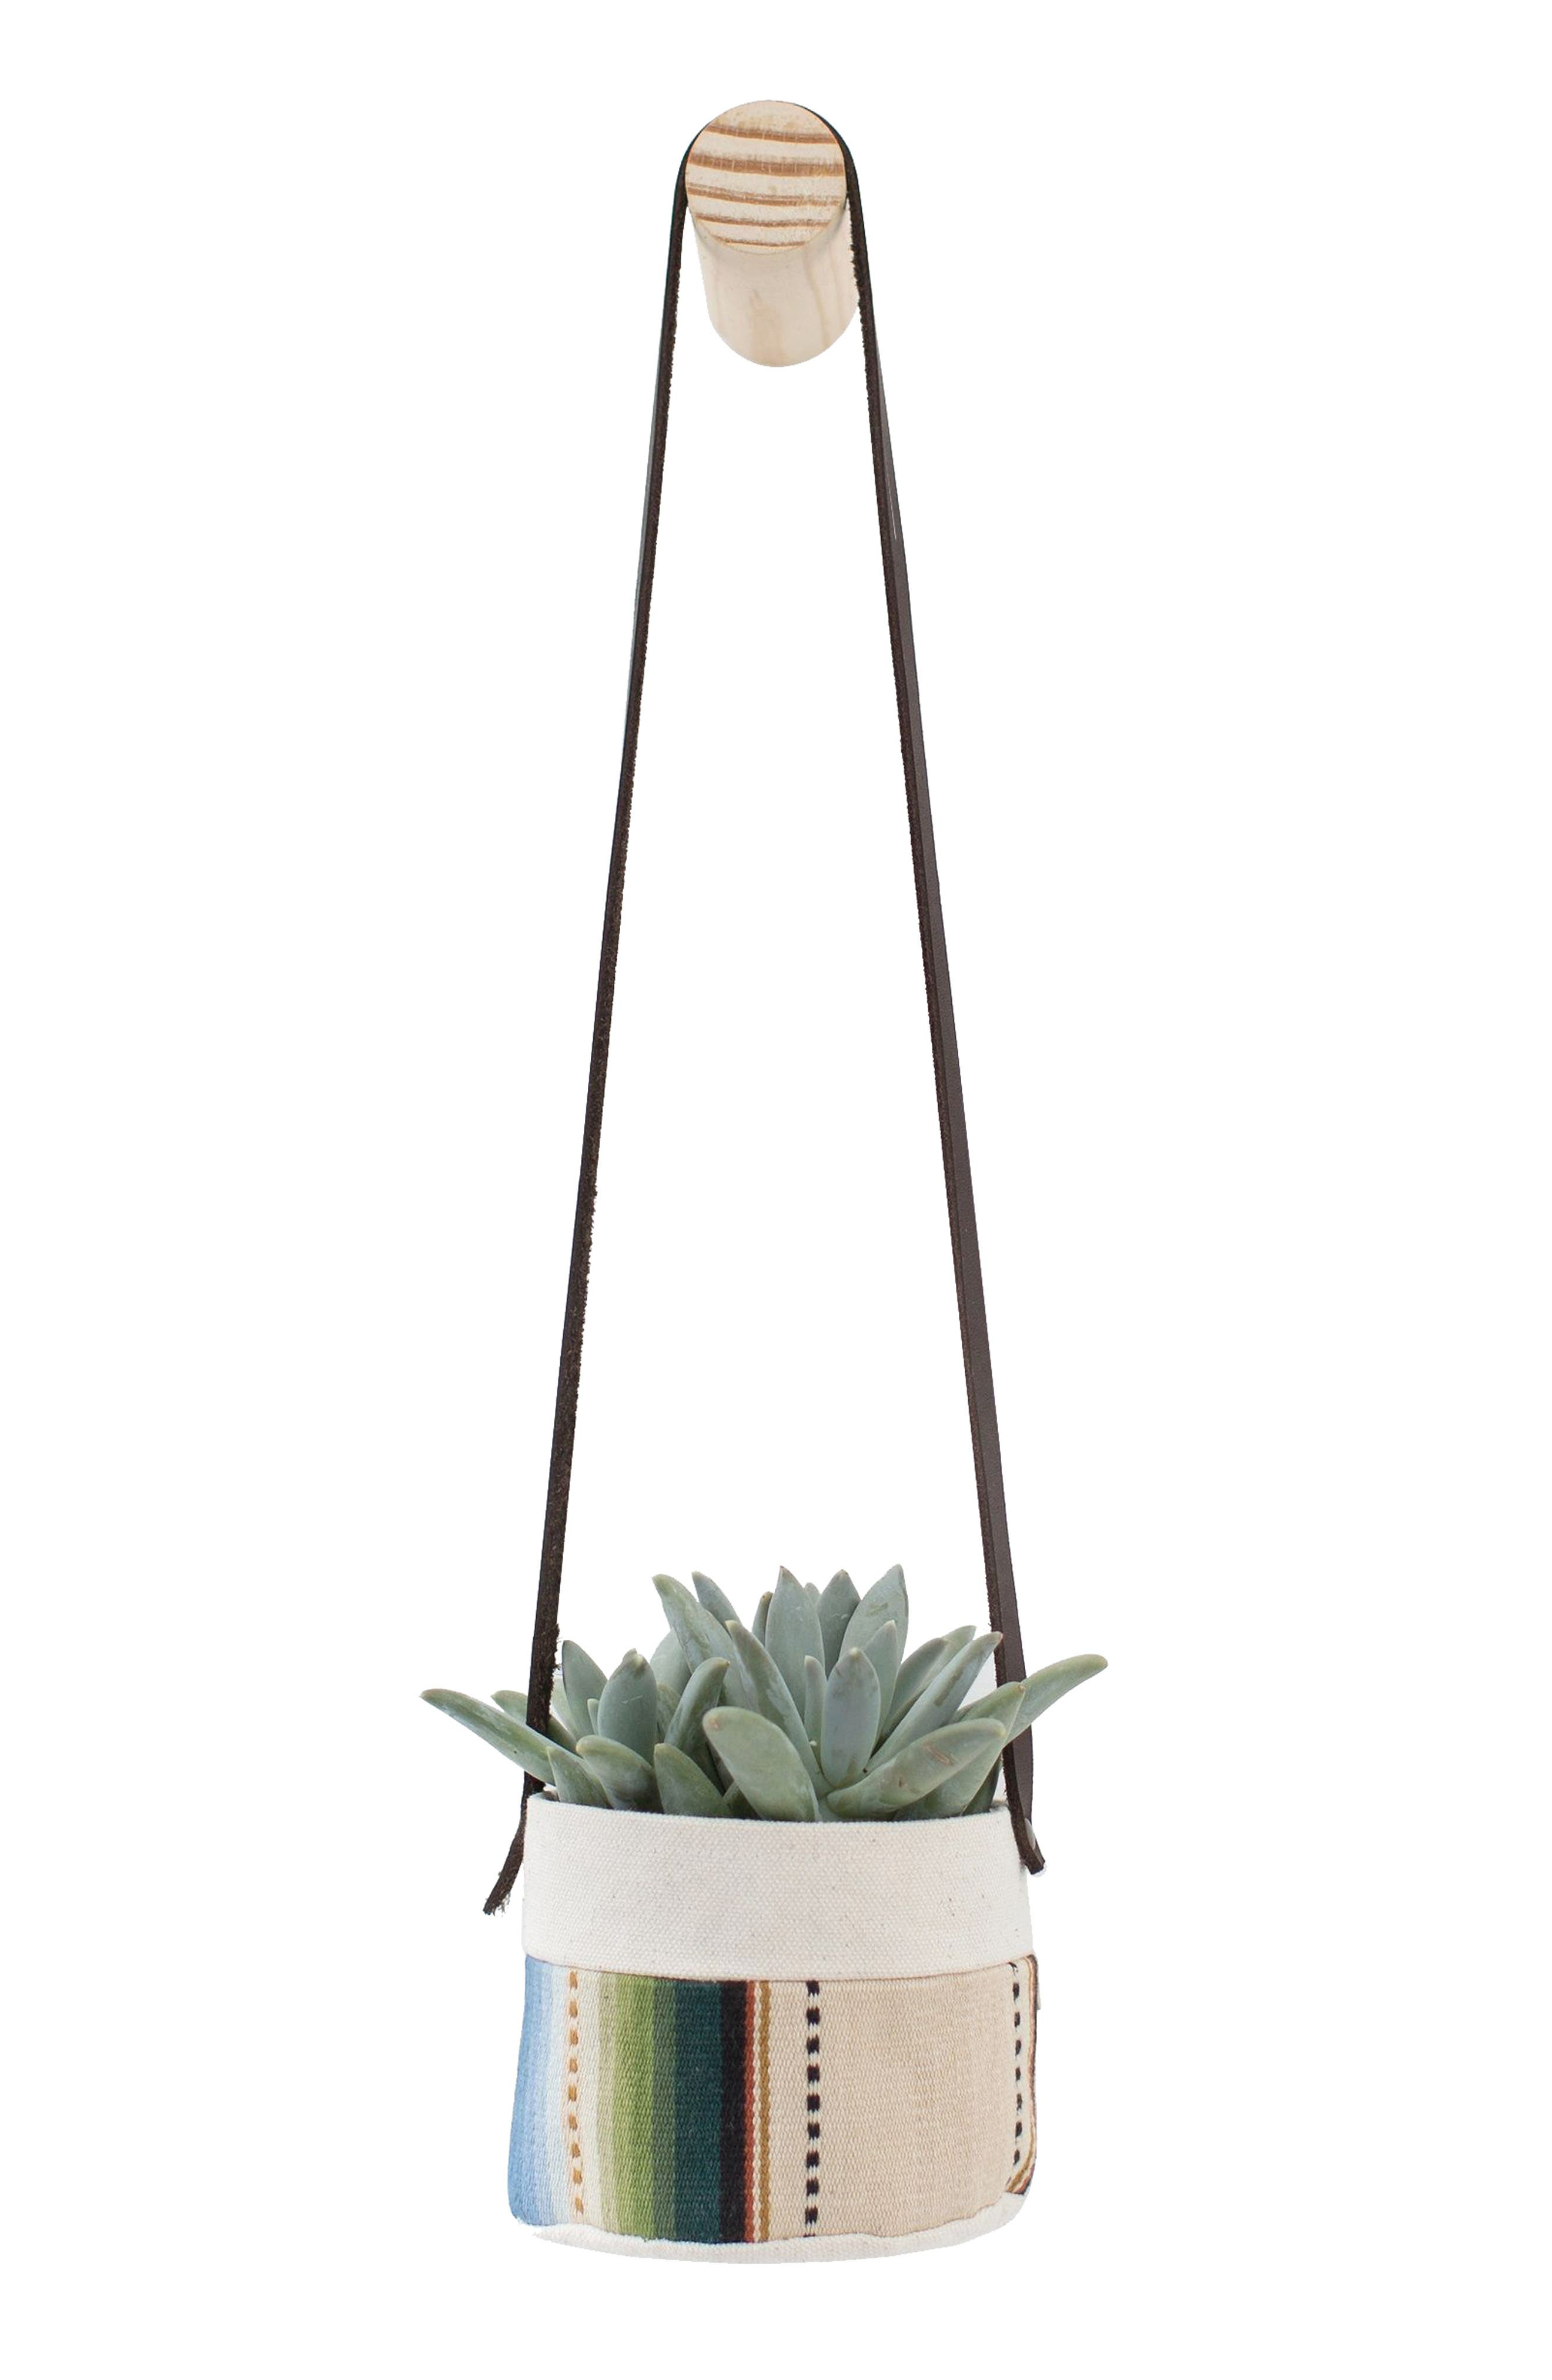 4-Inch Stripe Canvas Hanging Planter,                             Main thumbnail 1, color,                             250